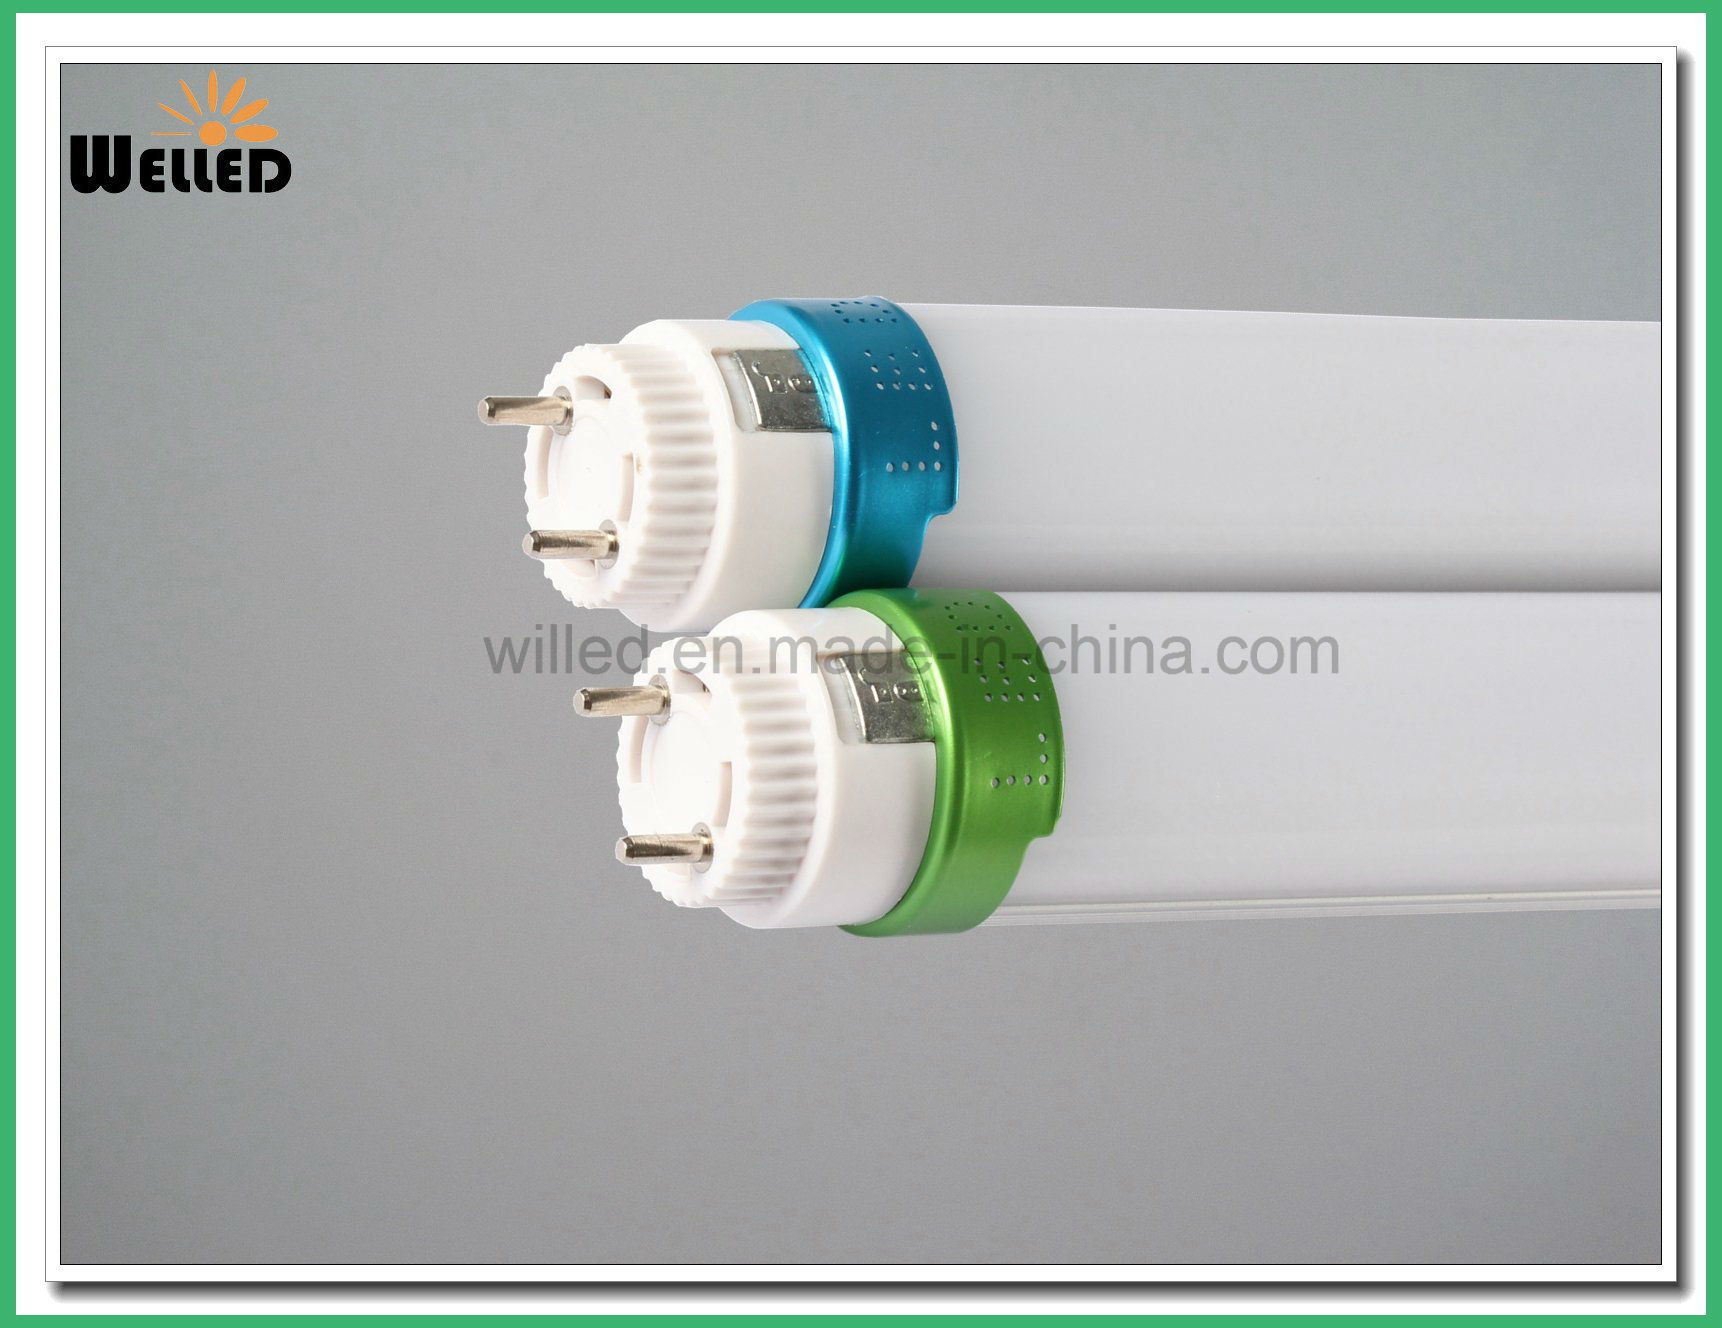 1200mm Compatible LED T5 Tube Light Flourescent Lamp 1.2m 18W 100lm/W AC85-265V with Built-in Driver